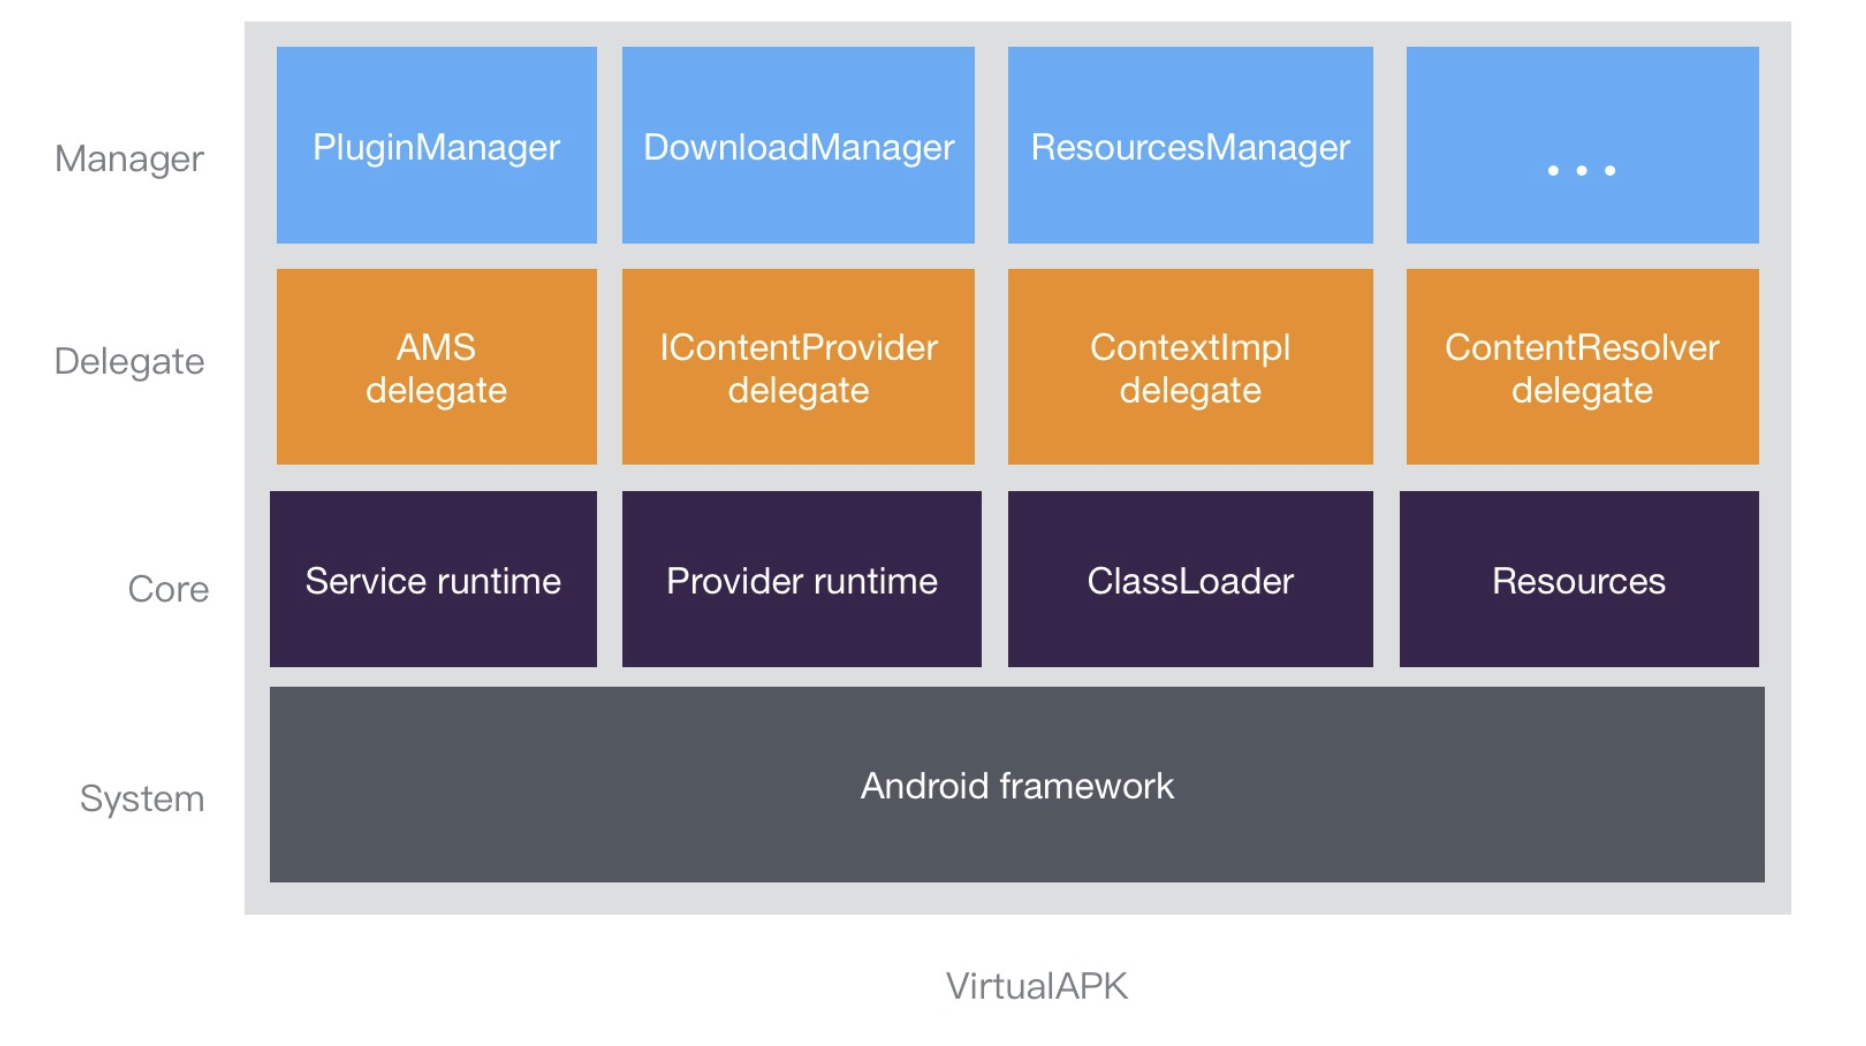 16 tools for bulletproof Android app security | TechBeacon